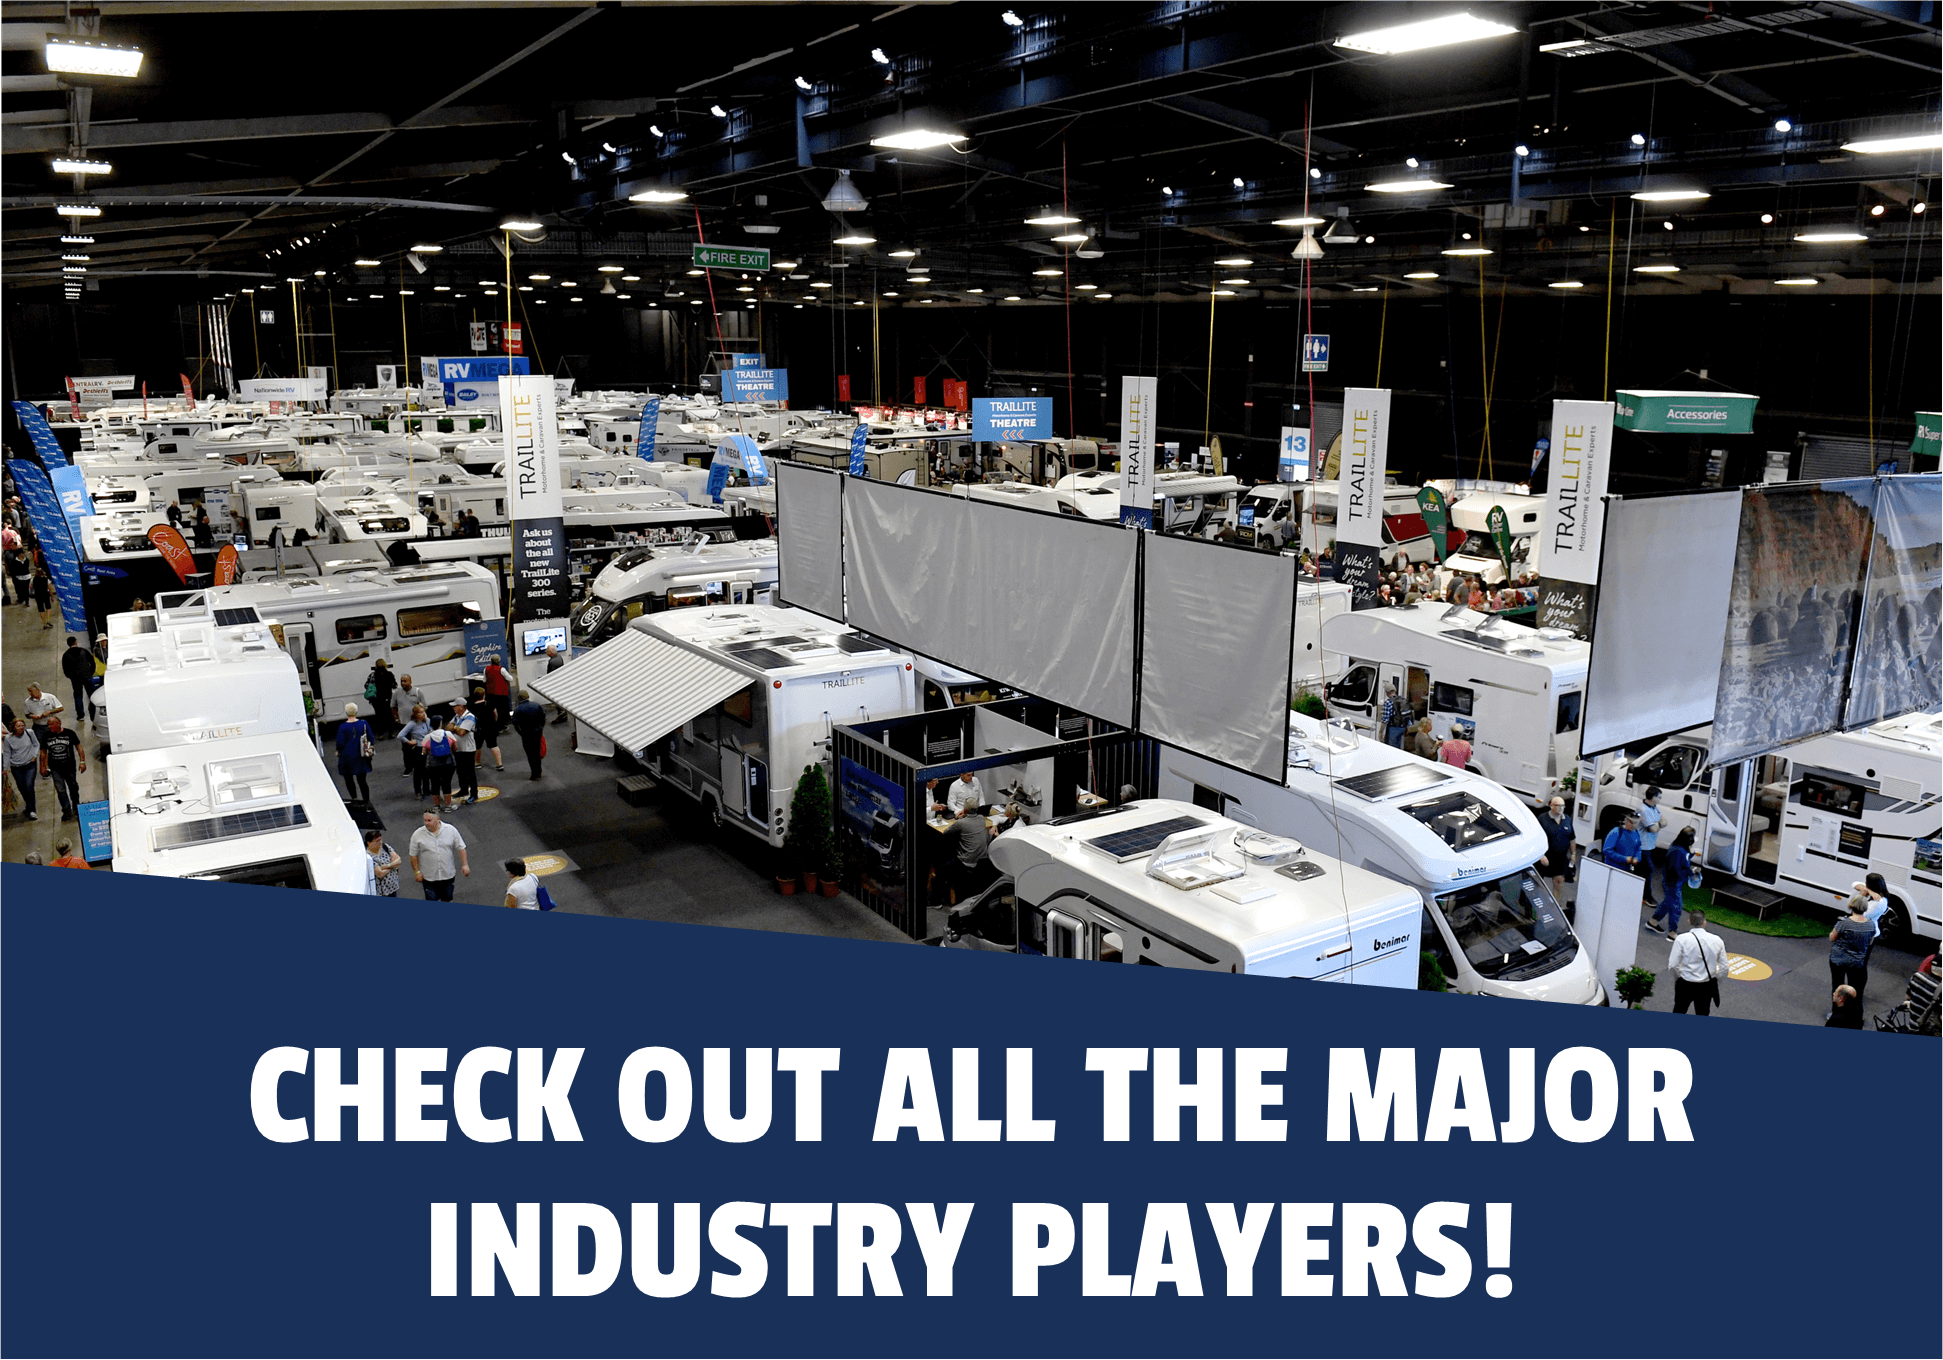 Industry Players Image - Small